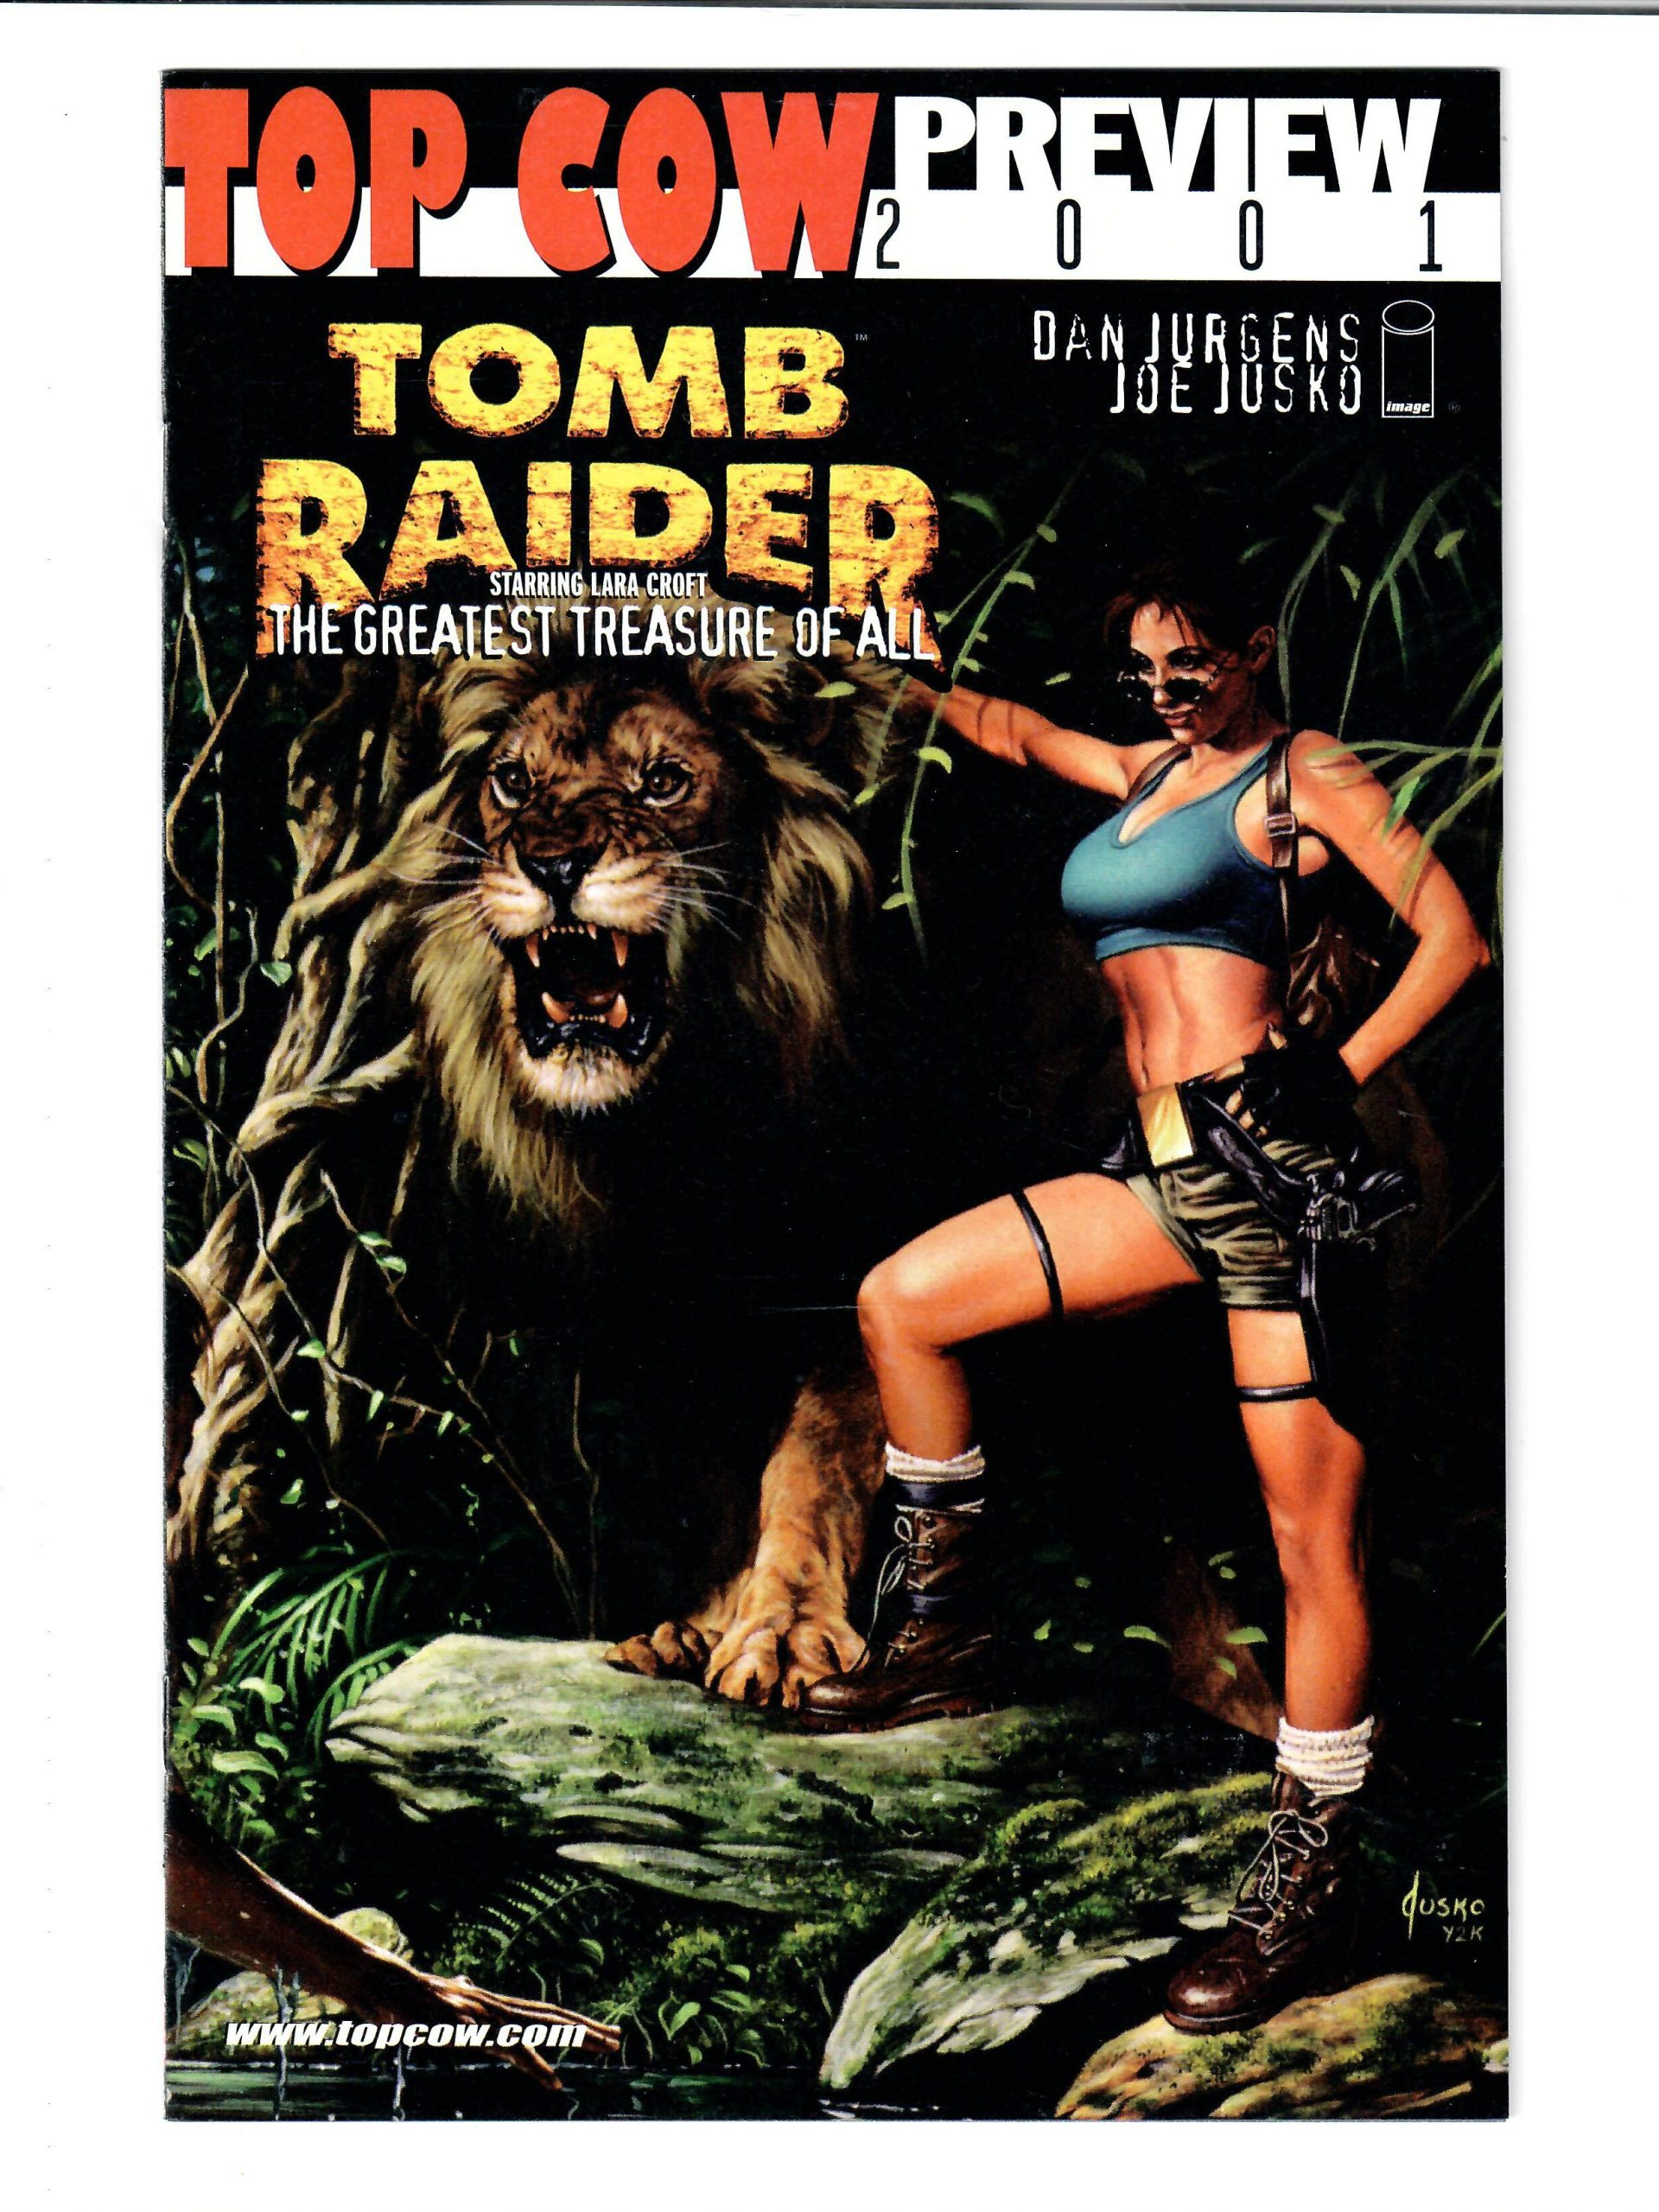 TOP COW COMICS TOMB RAIDER PREVIEW 2001 #1 2001 FIRST PRINT VG COMIC #149831-D-2